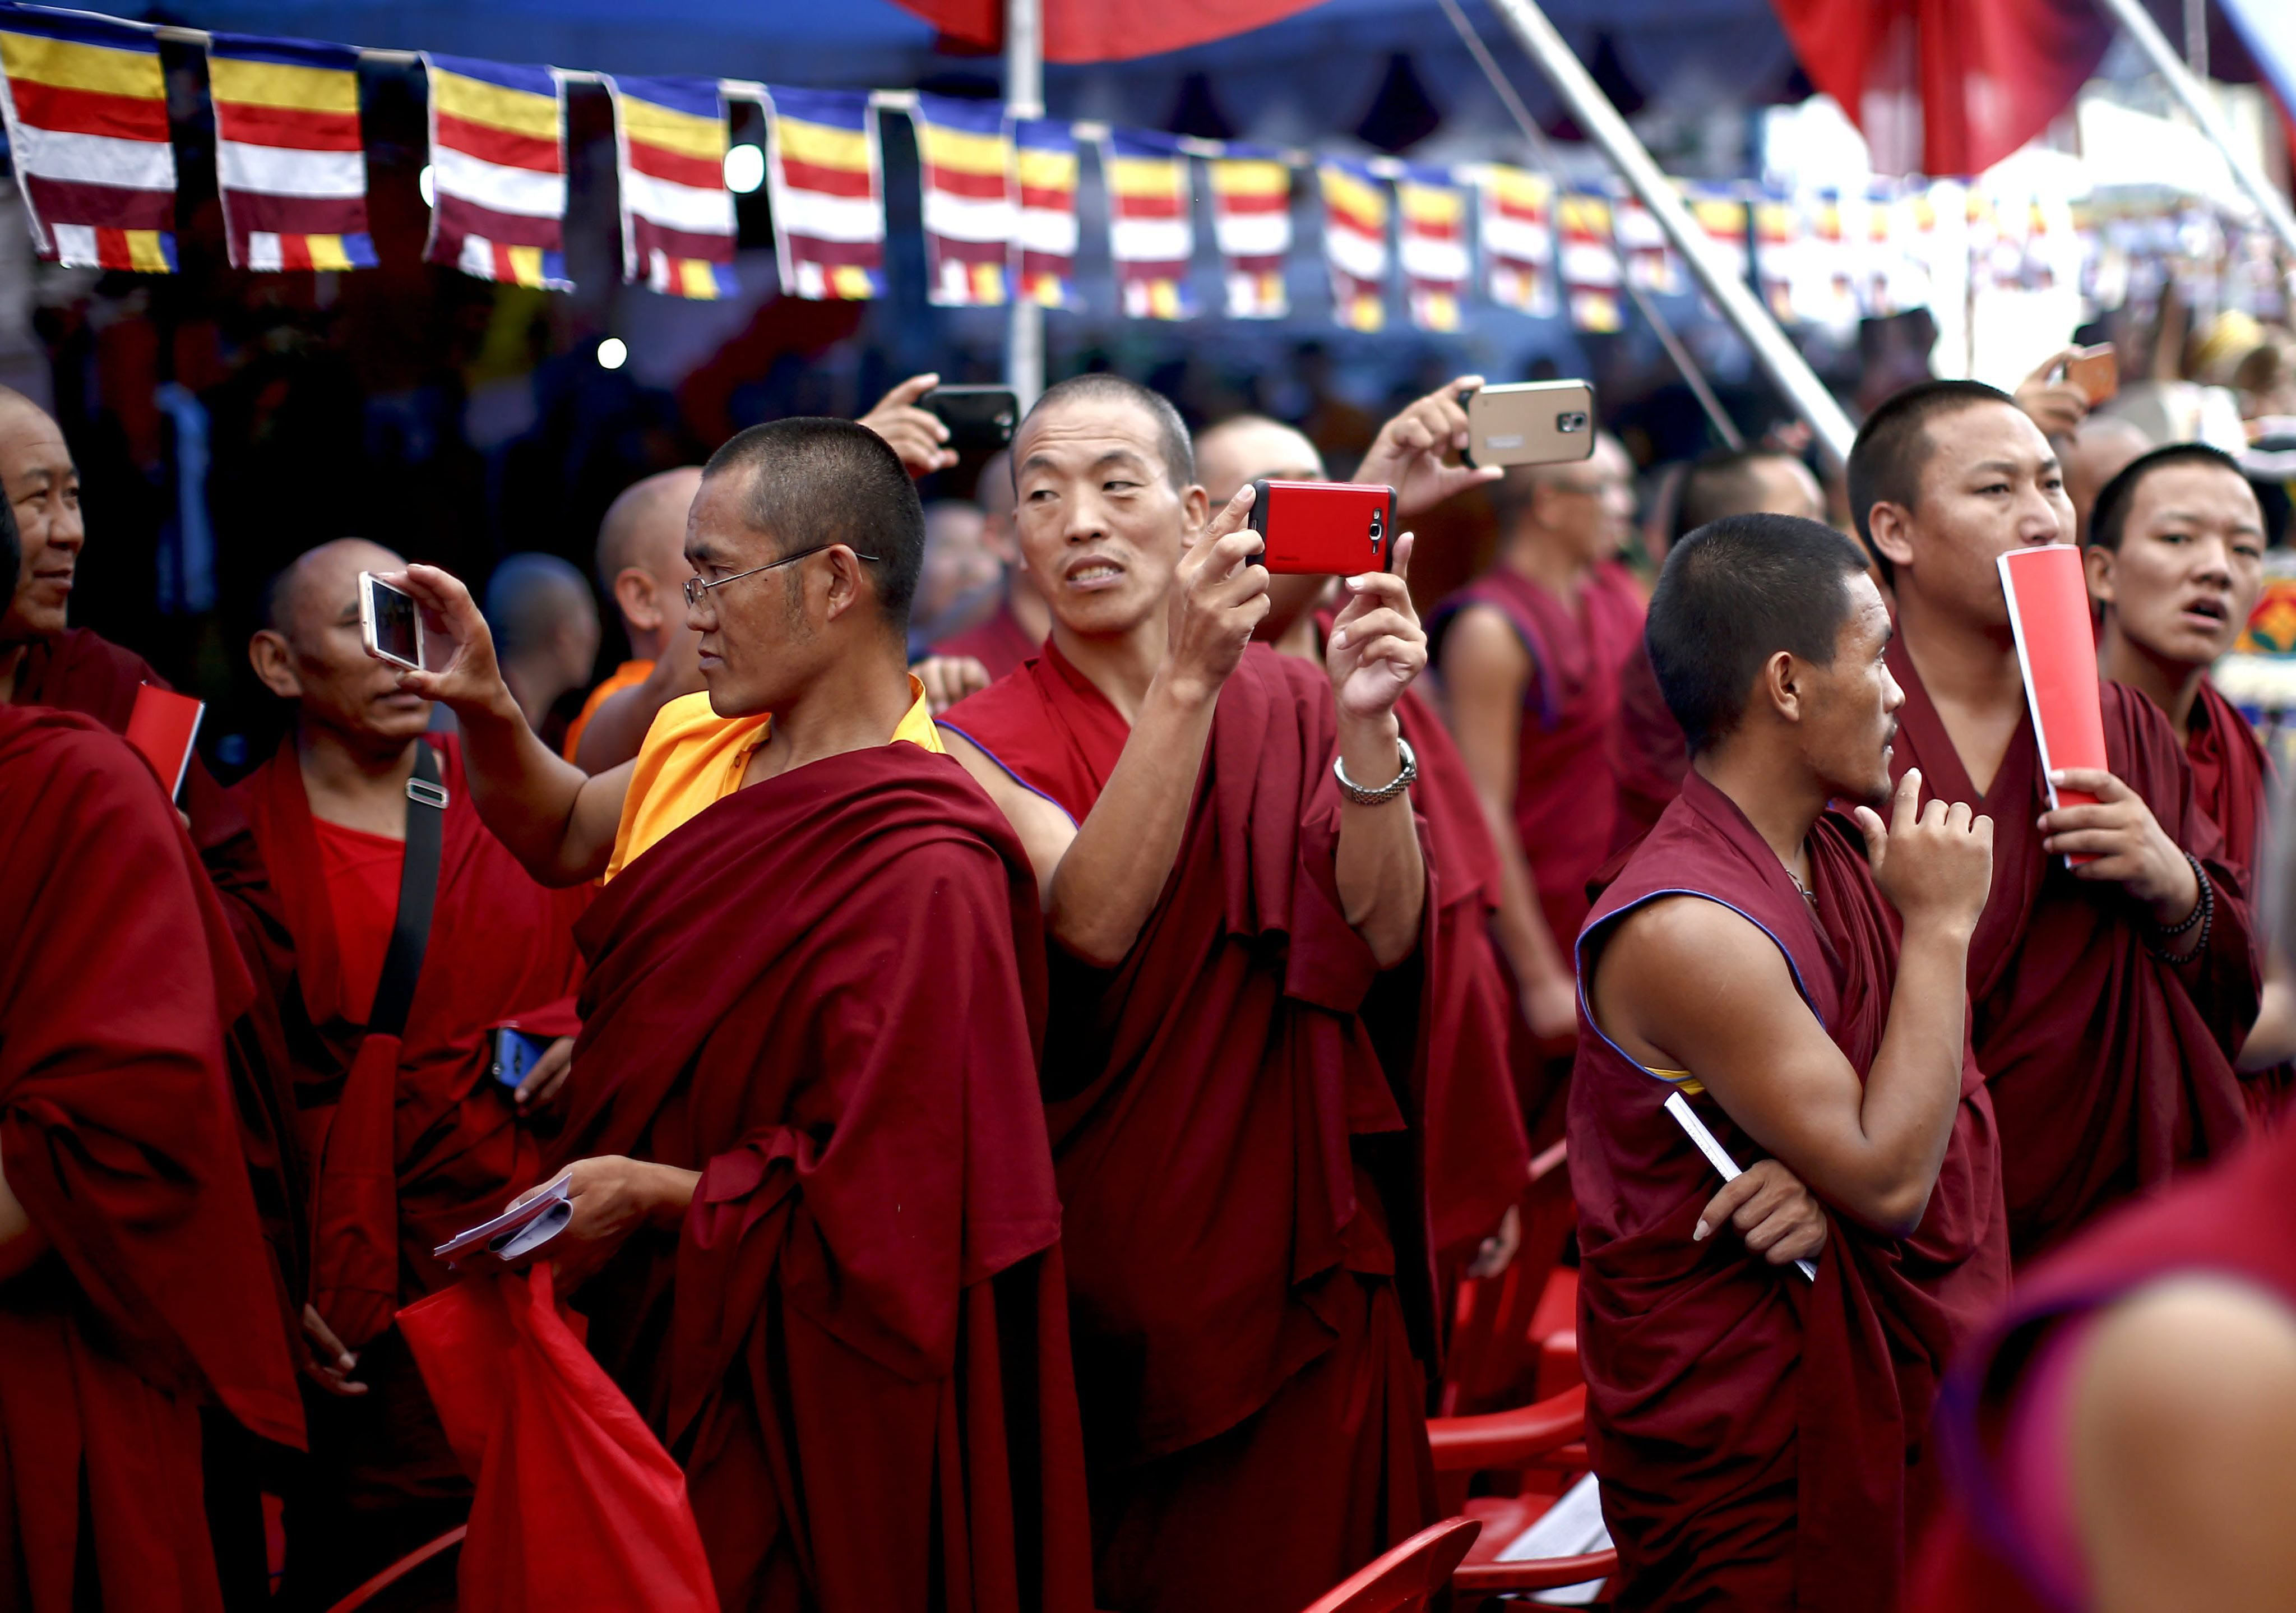 Exiled Tibetan monks attend a procession for the Dalai Lama's 80th birthday at Namgyal School in Kathmandu on July 6, 2015.